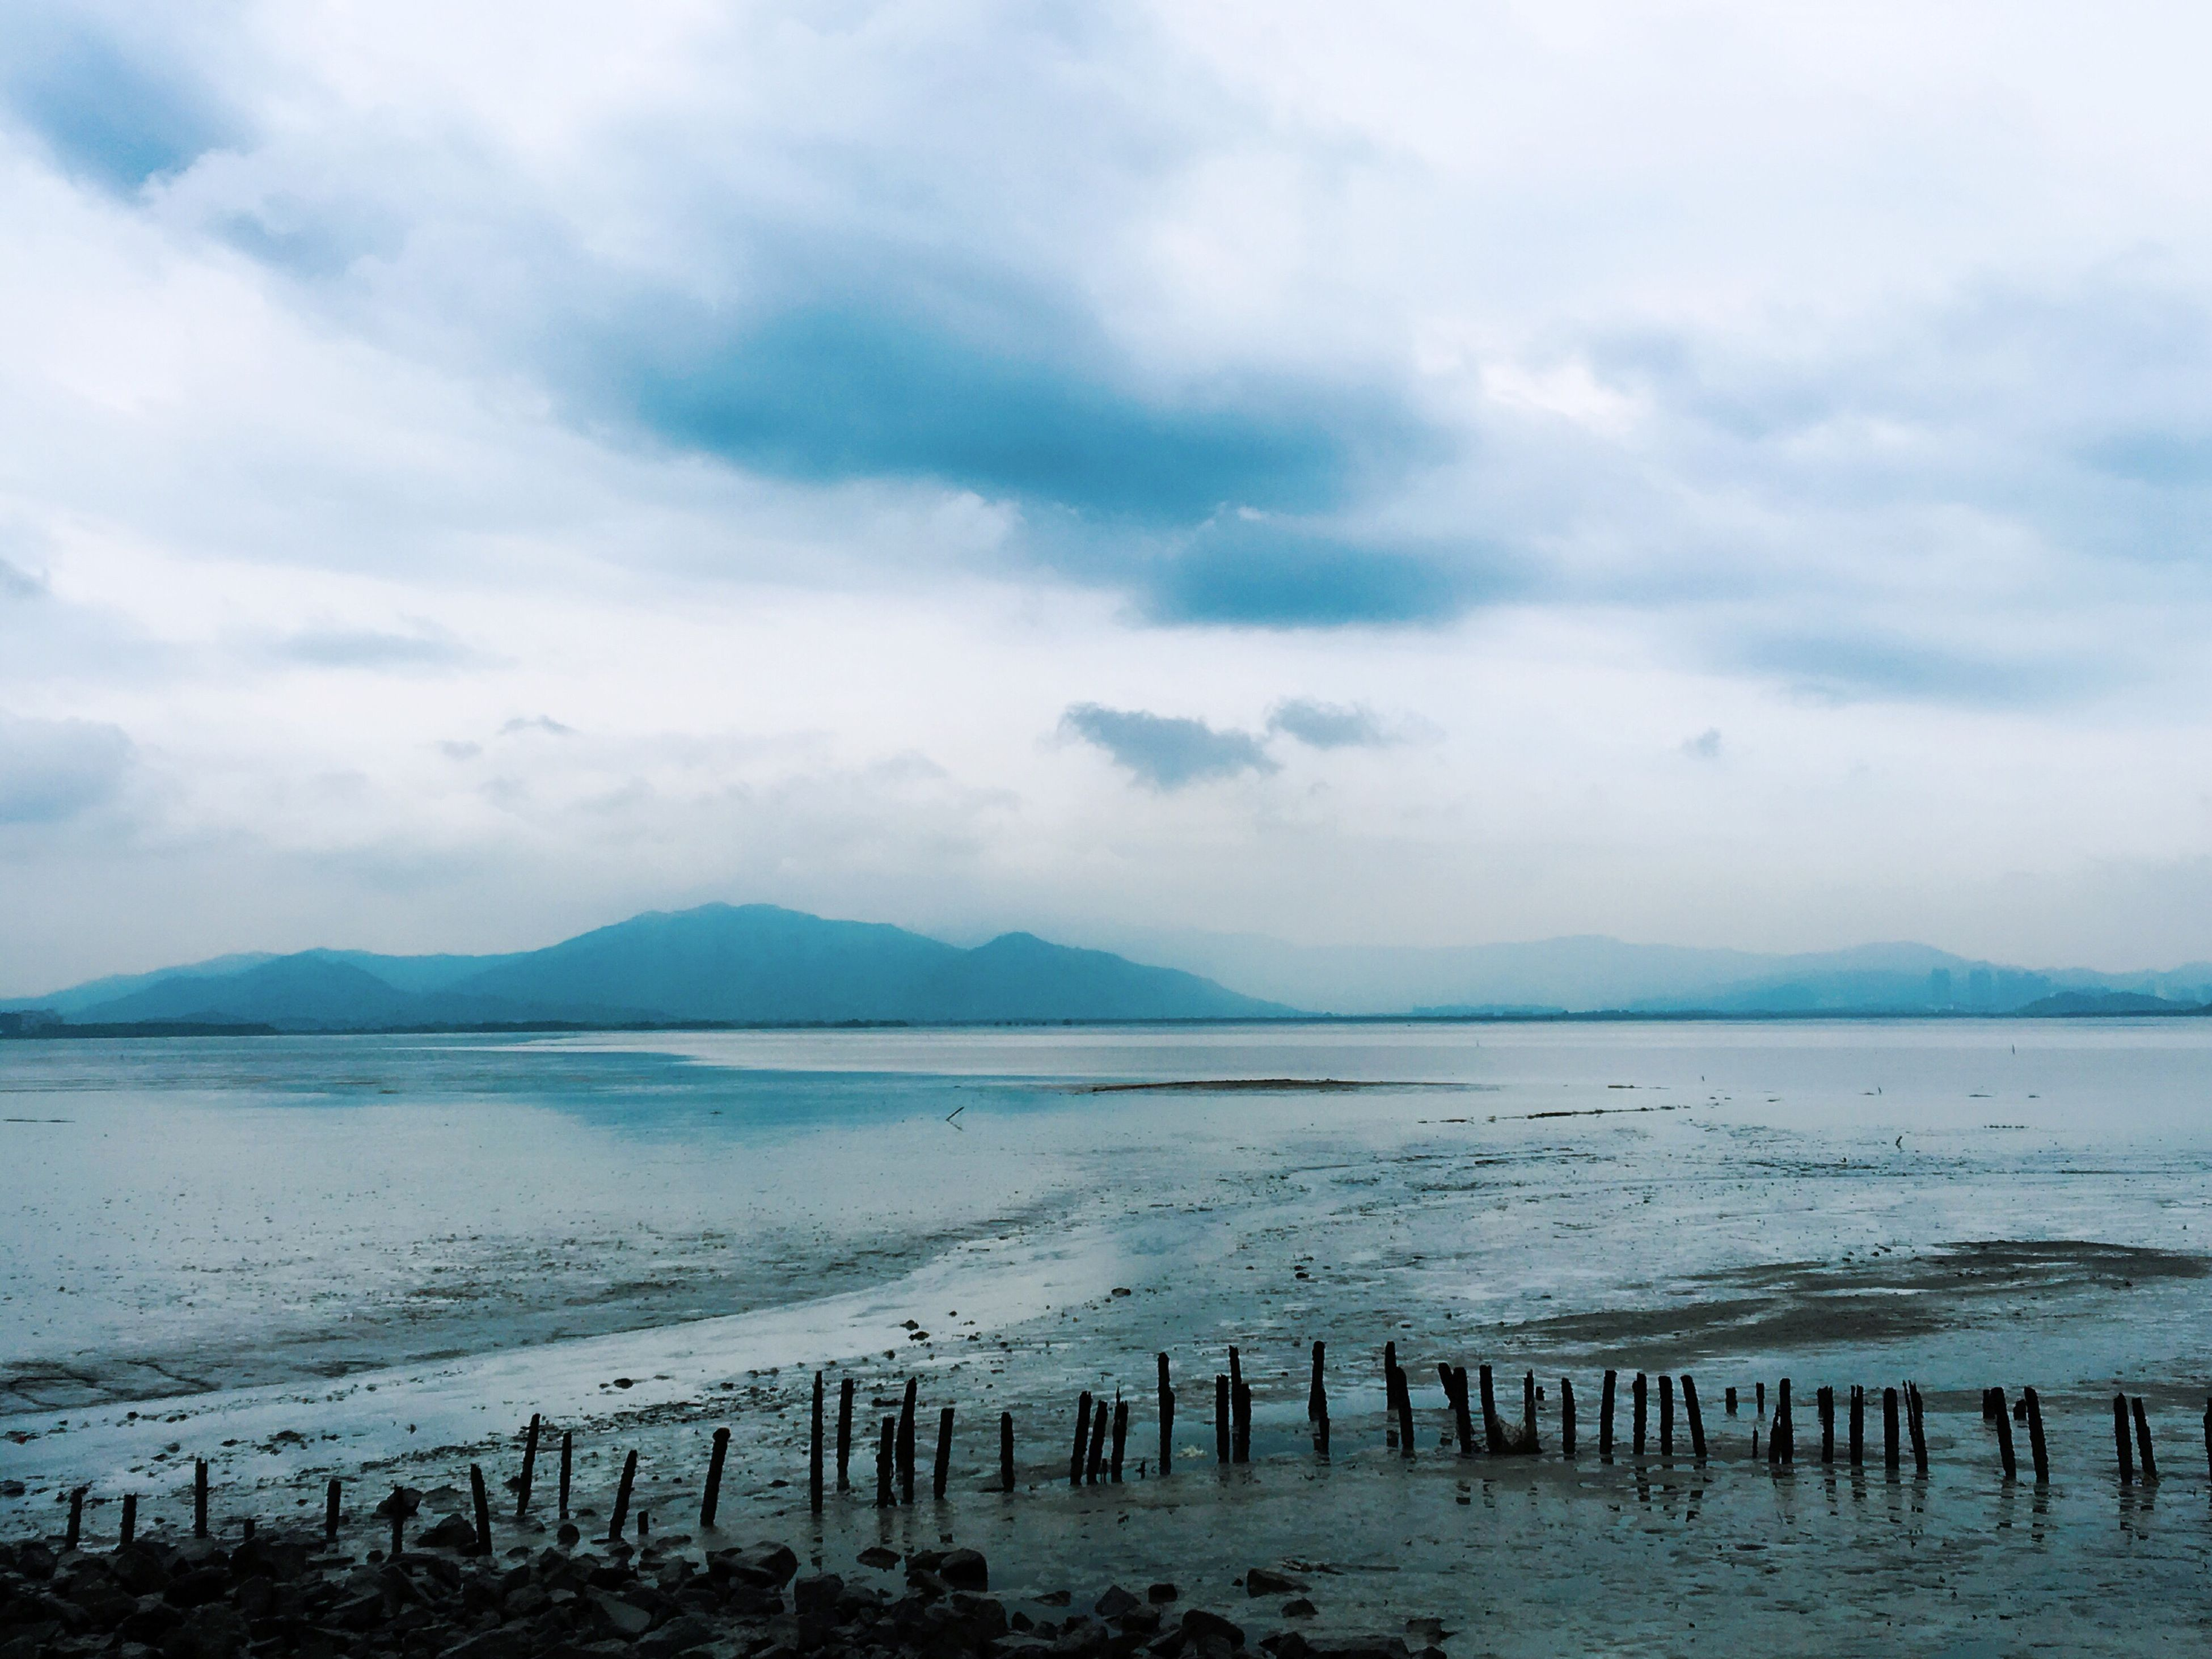 water, tranquil scene, sky, tranquility, scenics, sea, mountain, beauty in nature, cloud - sky, beach, nature, cloudy, shore, cloud, mountain range, idyllic, lake, non-urban scene, calm, outdoors